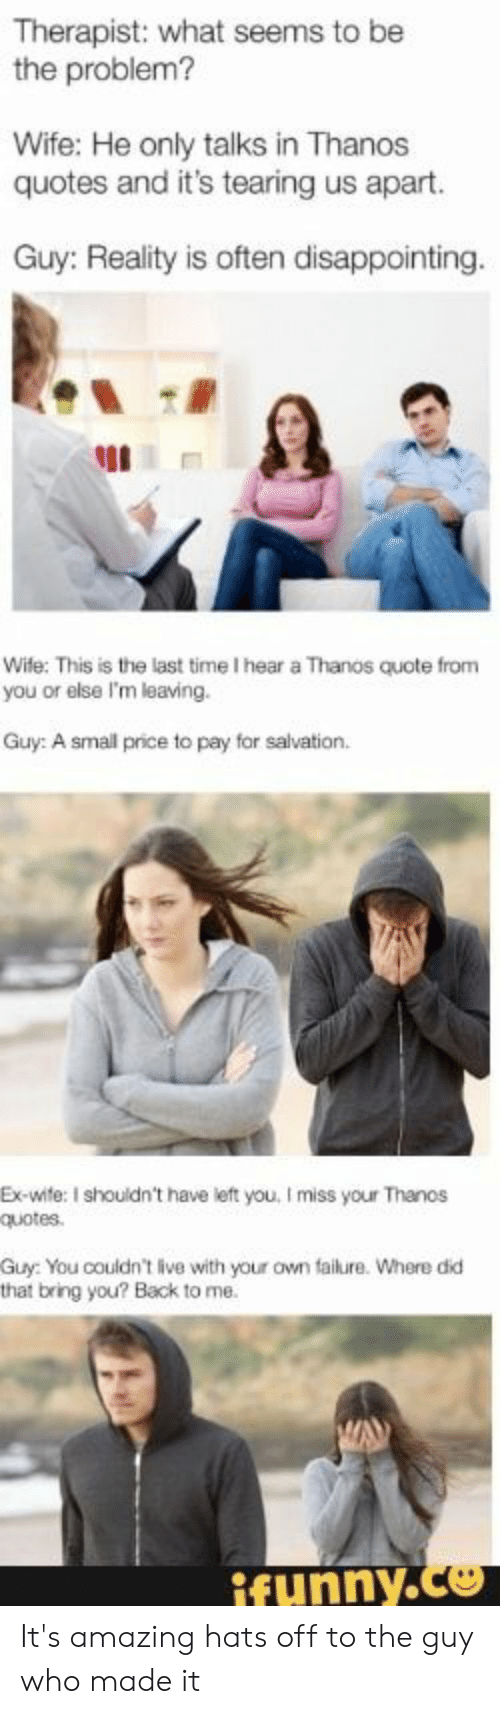 Live, Quotes, and Time: Therapist: what seems to be  the problem?  Wife: He only talks in Thanos  quotes and it's tearing us apart.  Guy: Reality is often disappointing.  Wife: This is the last time I hear a Thanos quote from  you or else I'm leaving.  Guy: A small price to pay for salvation.  Ex-wite: I shouldn't have left you, I miss your Thanos  quotes  Guy: You couldn't live with your own failure. Where did  that bring you? Back to me.  ifunny.co It's amazing hats off to the guy who made it